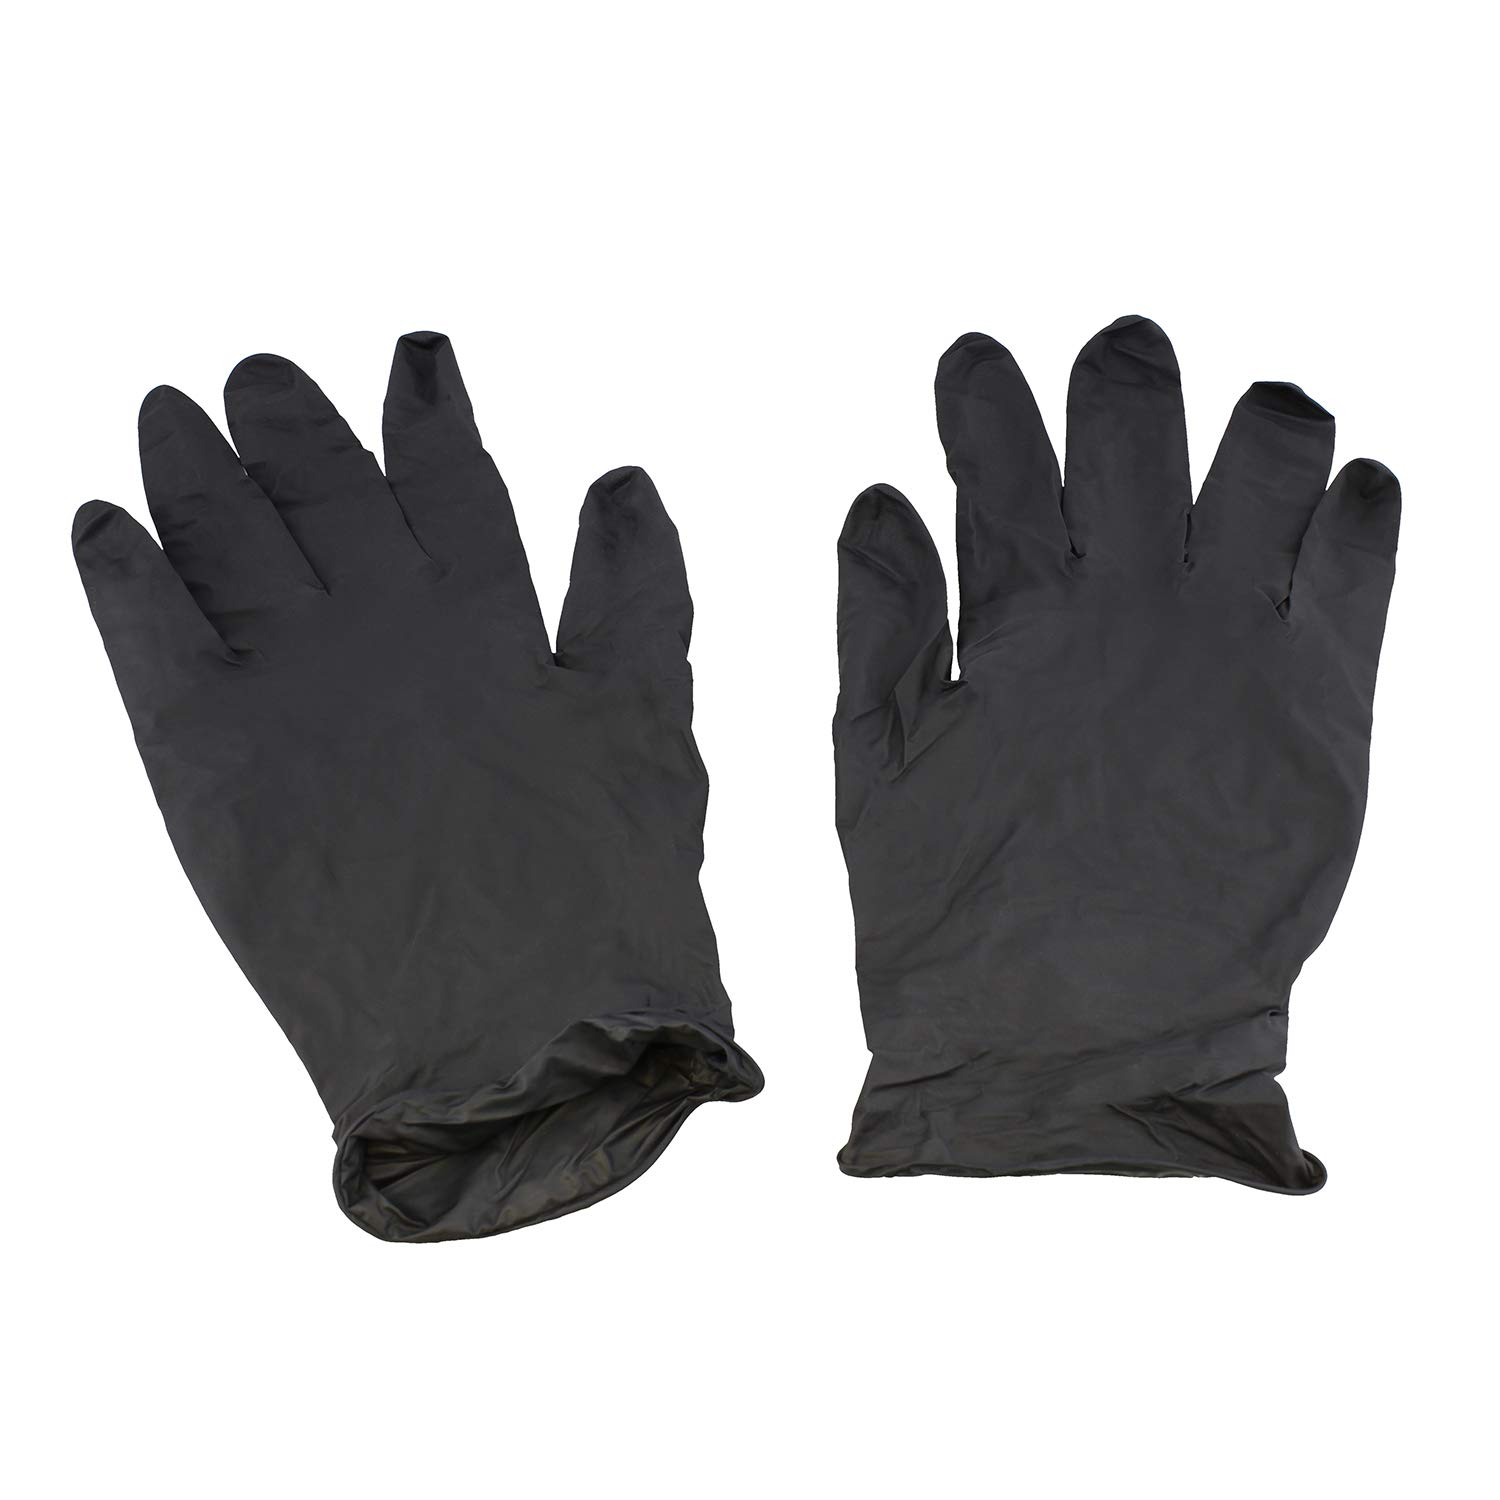 Showa Best 6112PF Eco Best Technology Biodegradable Industrial Grade Nitrile Glove, Disposable, Powder-Free, 4 mil Thickness, MEDIUM, Black (Pack of 100)